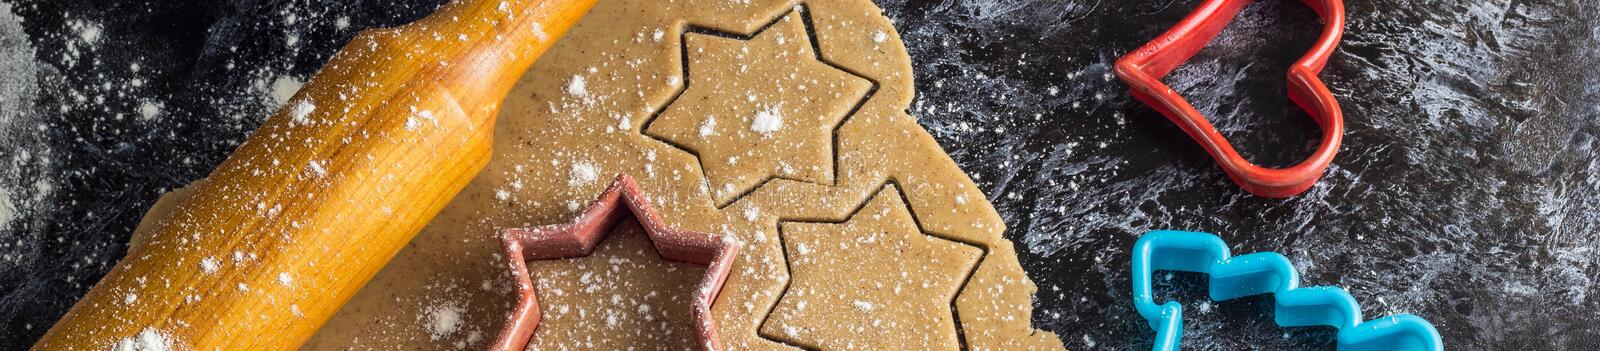 Banner of Cooking Christmas gingerbread cookies with ingredients on a dark background royalty free stock image